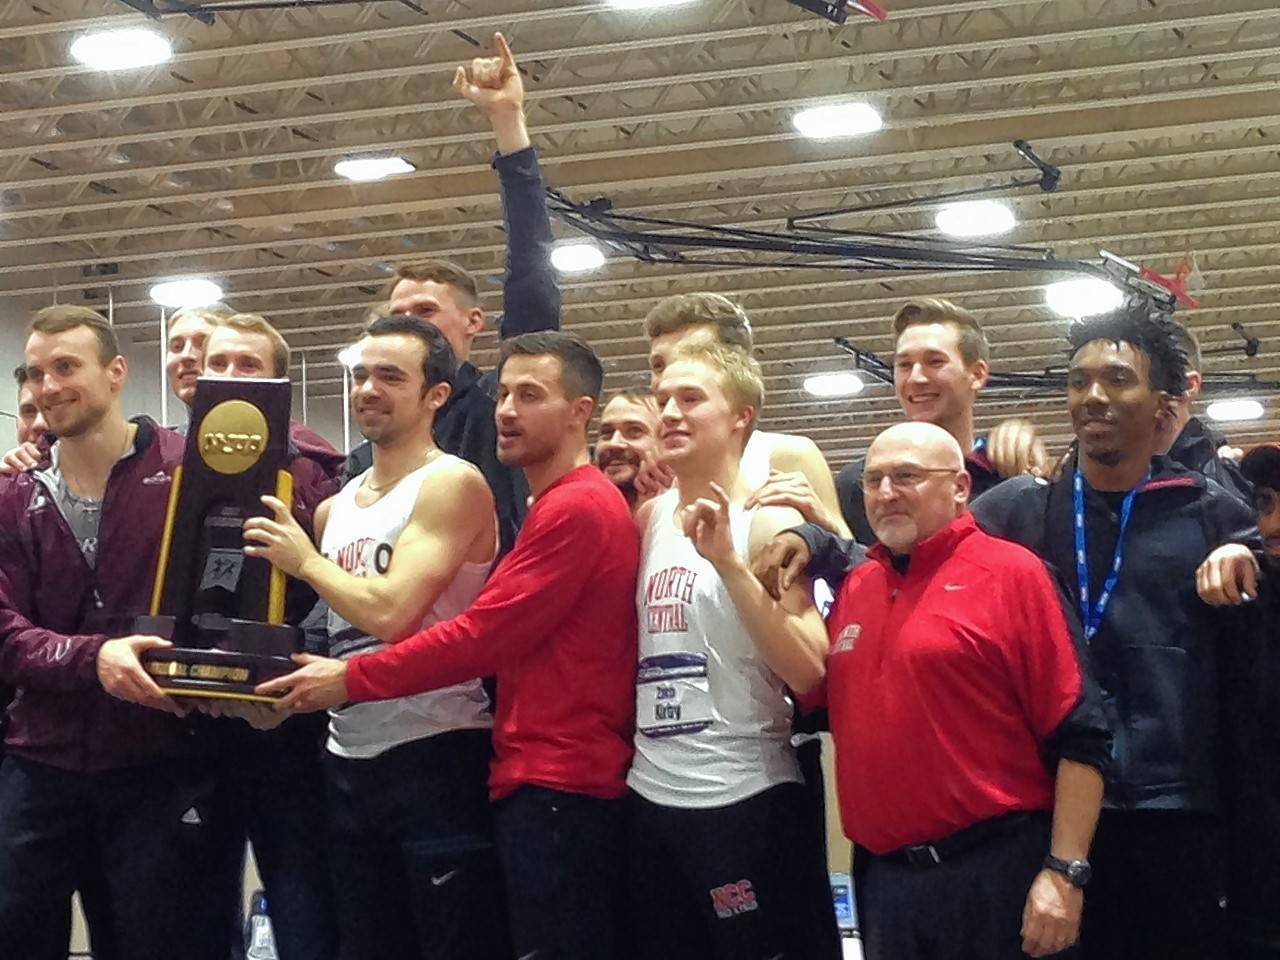 Scoring 34 points each, Wisconsin-La Crosse and North Central College tied for the title of the NCAA Division III Men's Indoor Track & Field Indoor Championships, the first championship tie in men's indoor history.